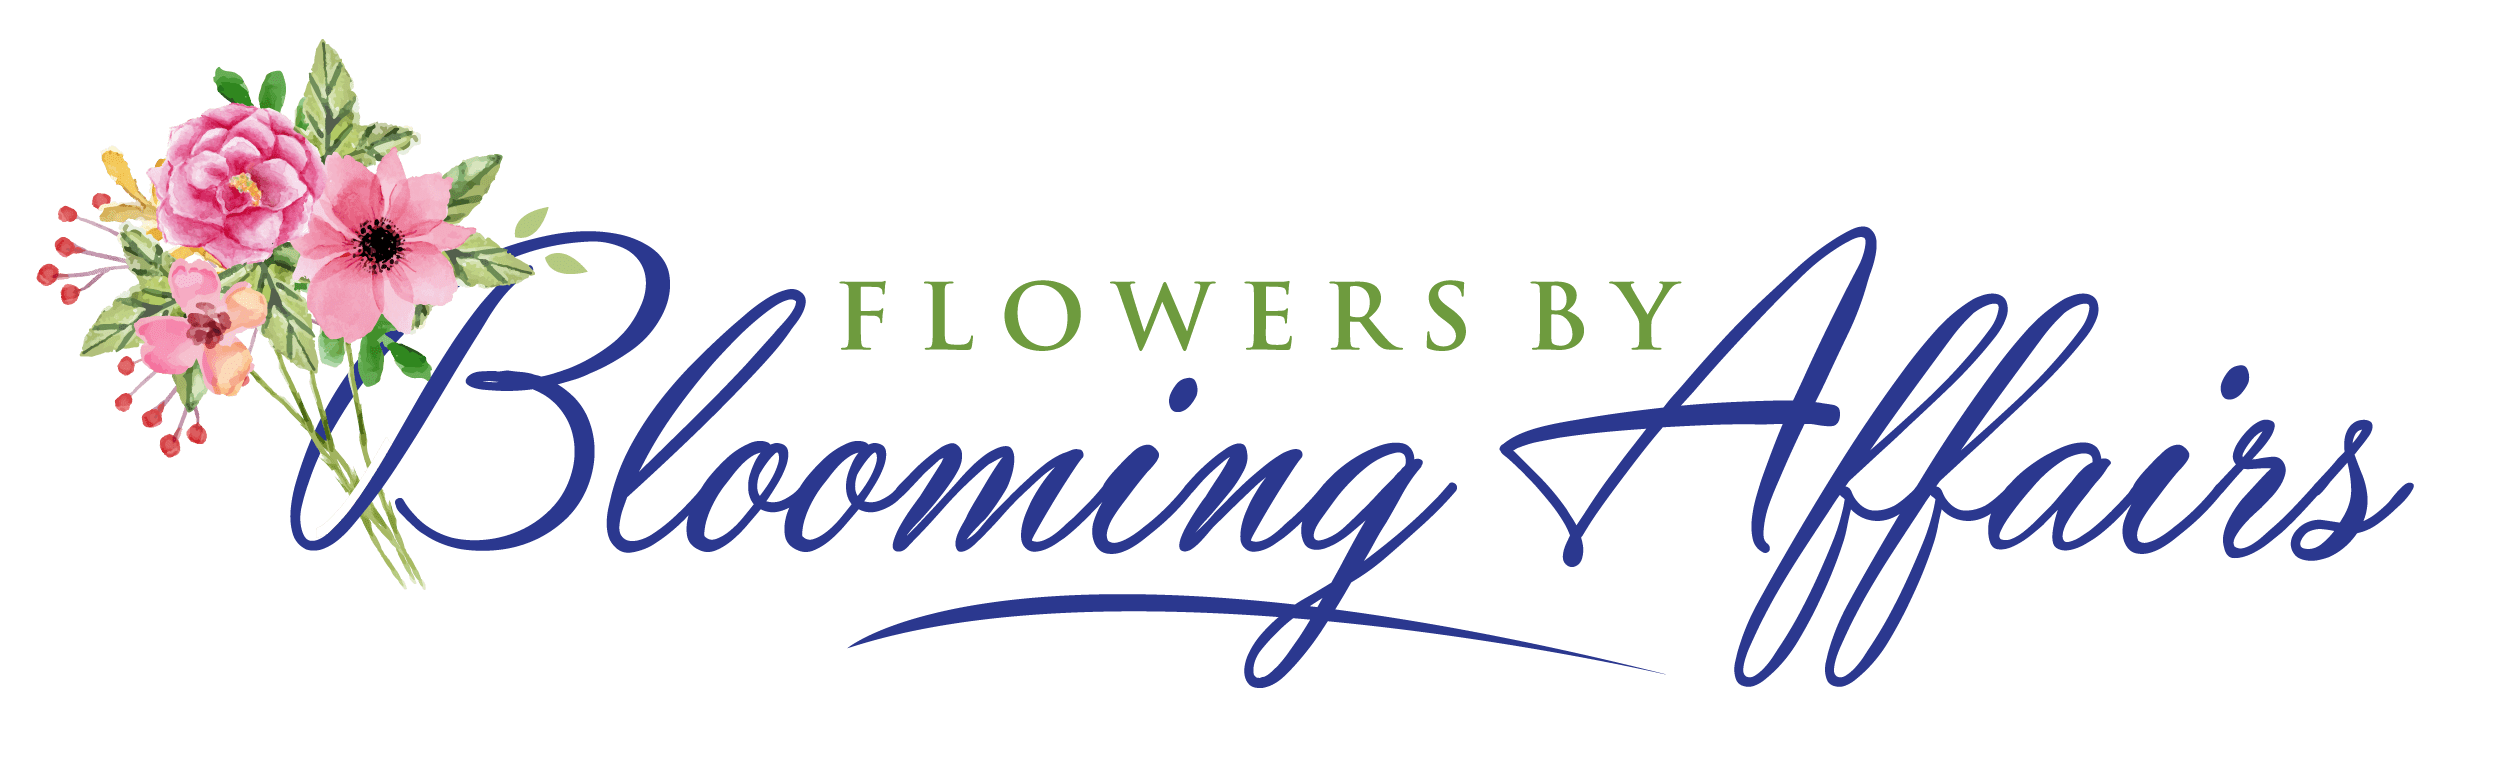 New York Florist | Flower Delivery by Flowers By Blooming